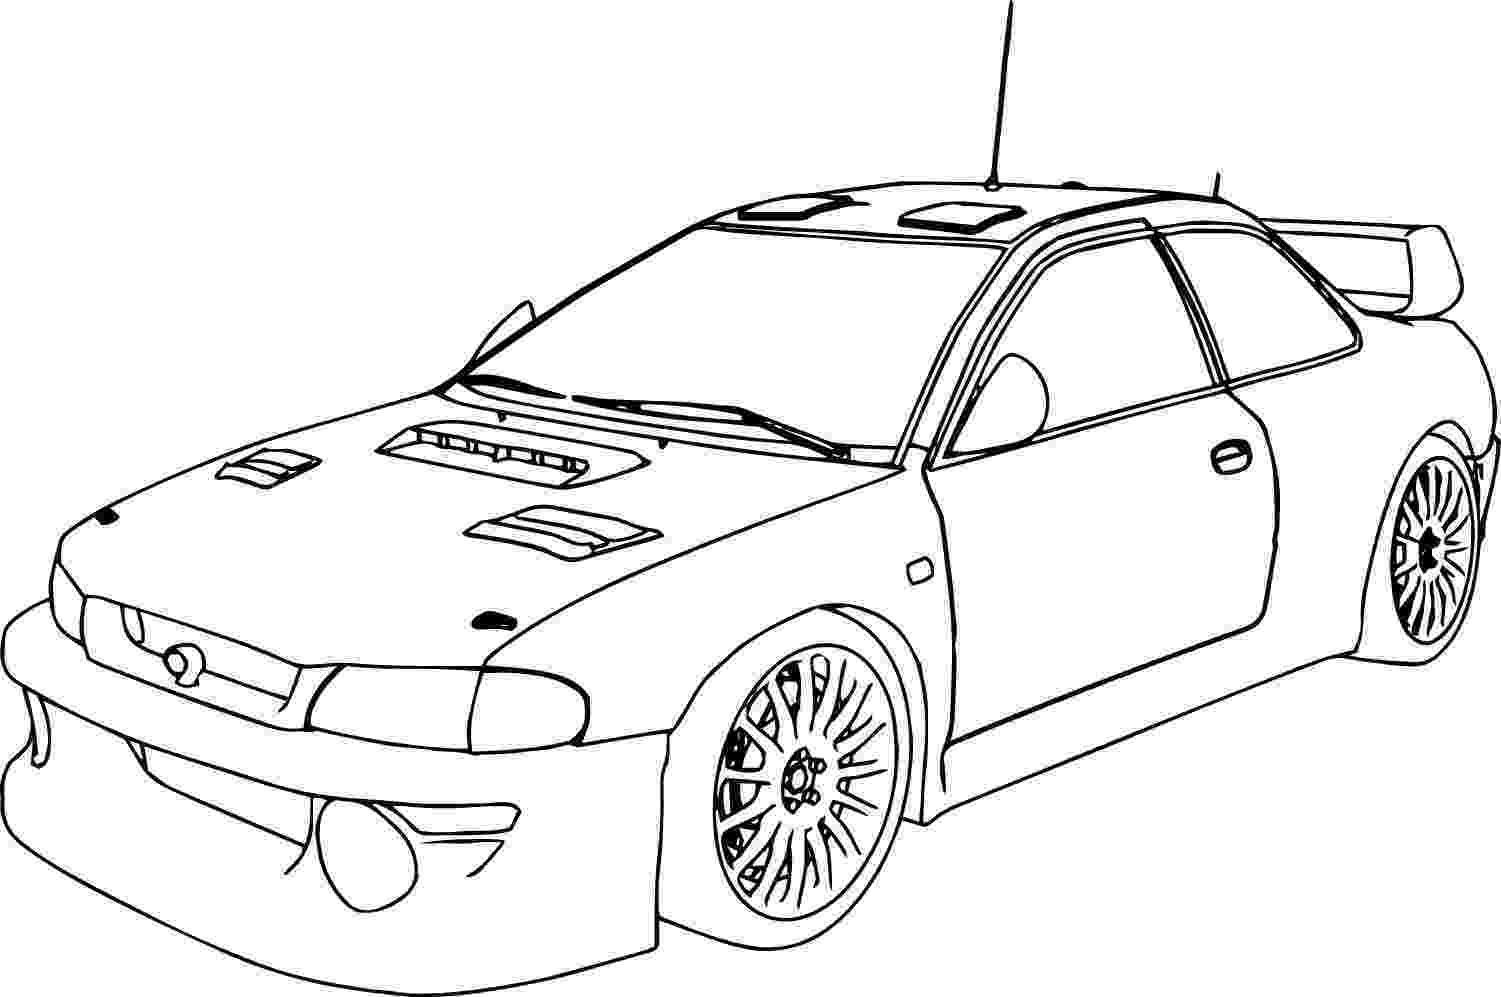 race cars to color race car coloring pages 360coloringpages color race cars to